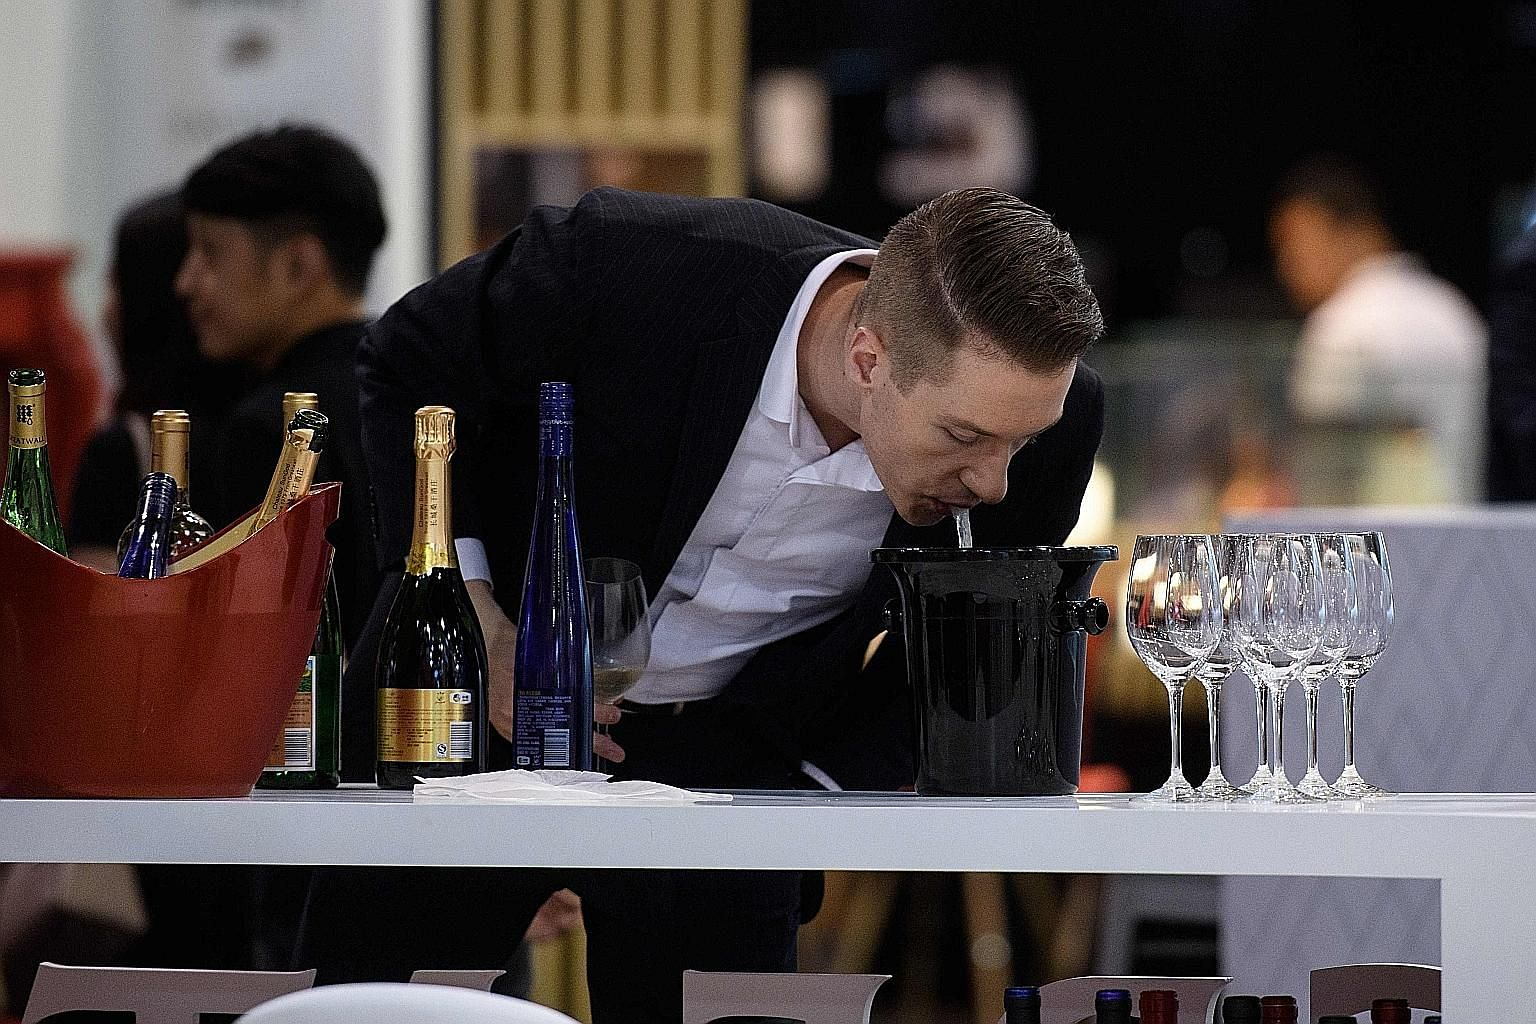 """Spitting when tasting wine can bring out """"other prevalent aromatic notes"""" when it mixes with air coming from the nose, says Mr Pierre-Jules Peyrat, a Paris sommelier."""